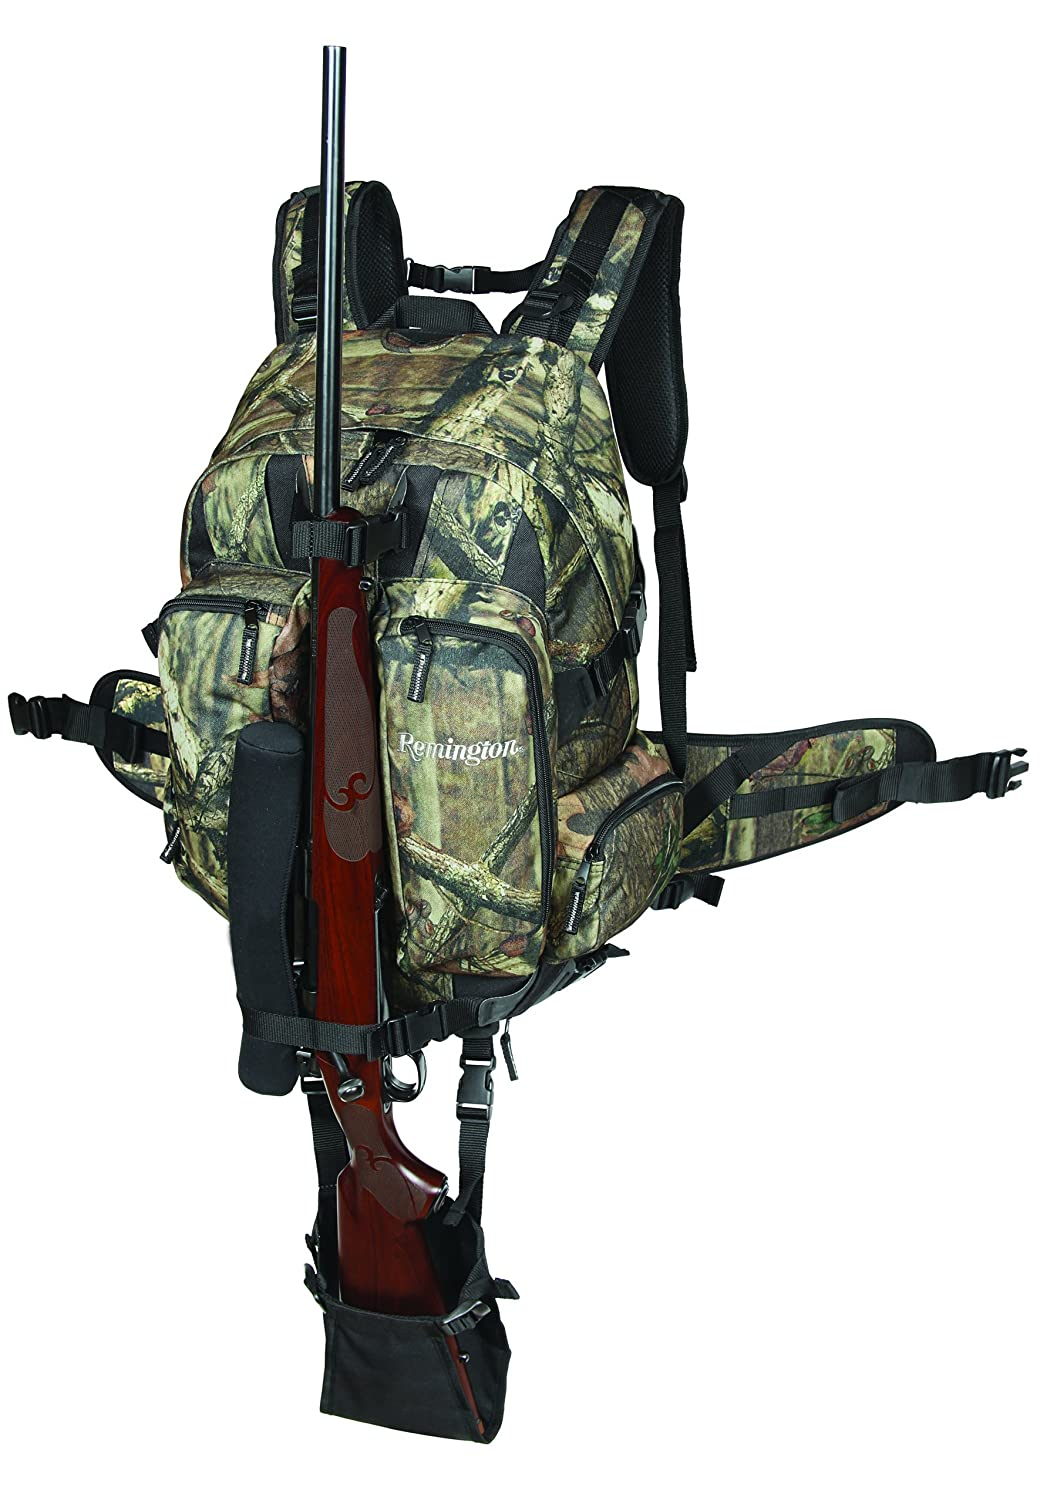 Allen Remington Camo Hunting Daypack – Twin Mesa 1,853 cu in Hunting Daypack